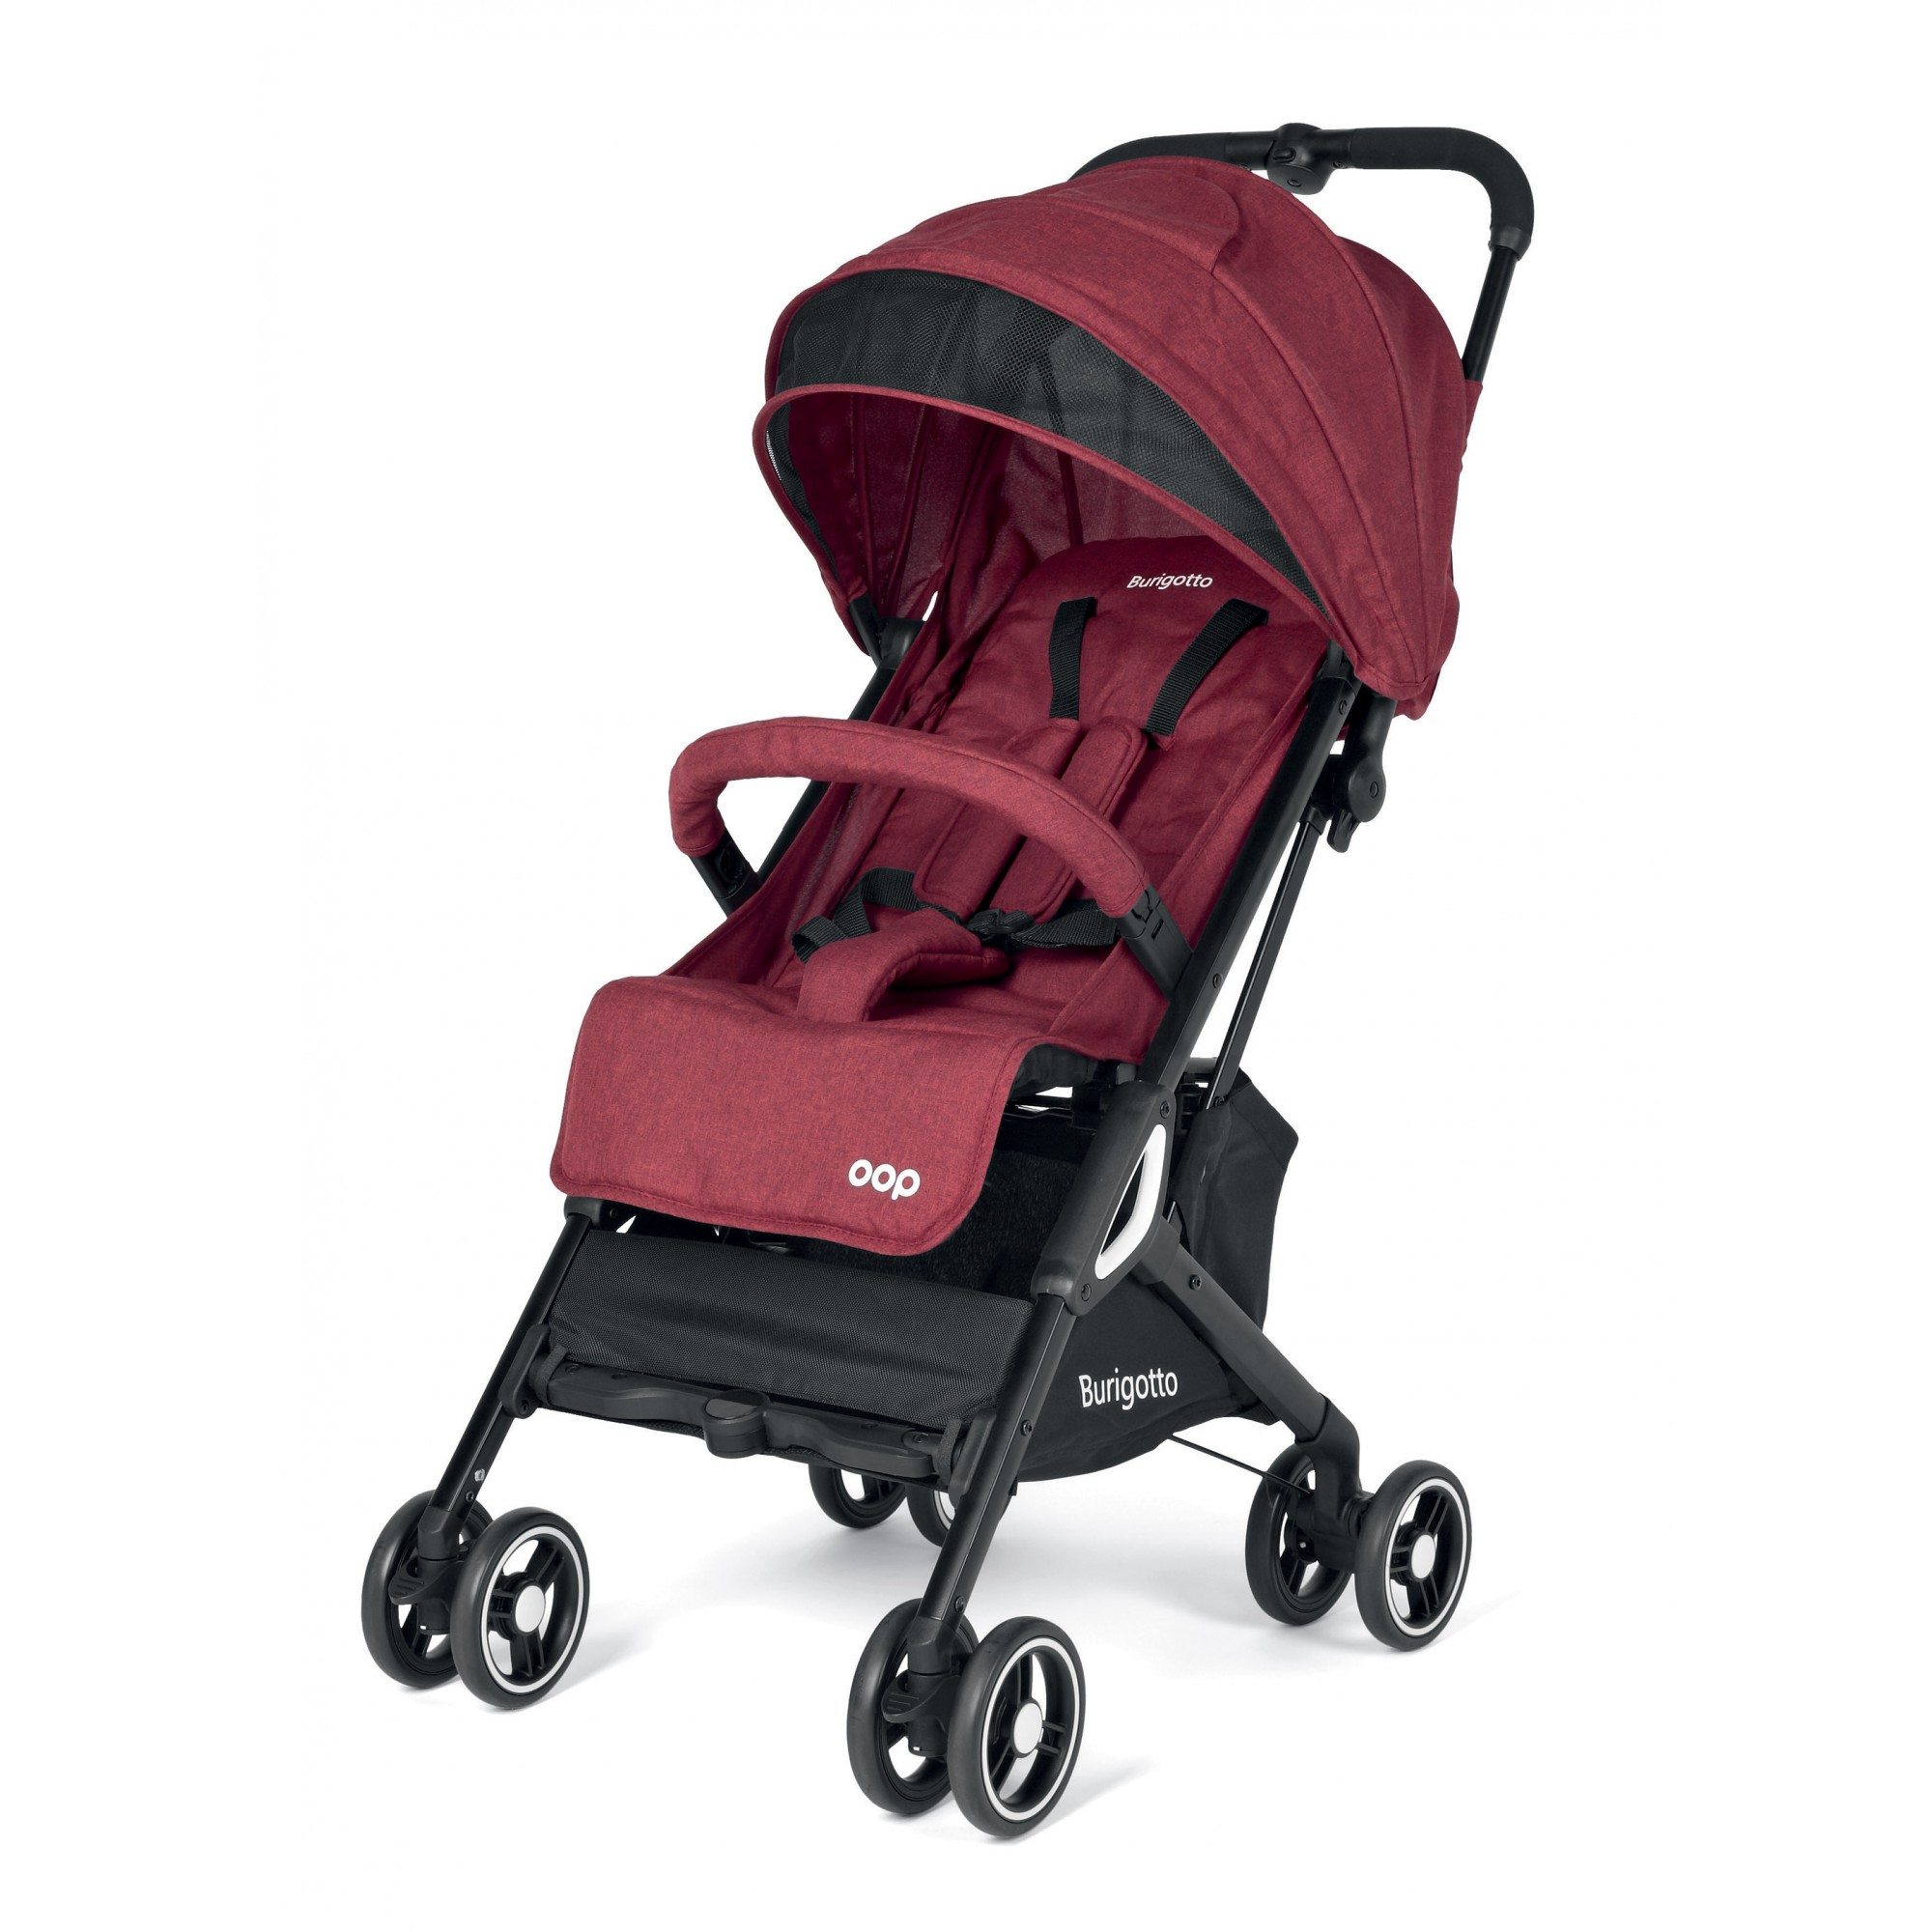 Carucior Burigotto by Peg Perego, Red, 0 - 22 kg